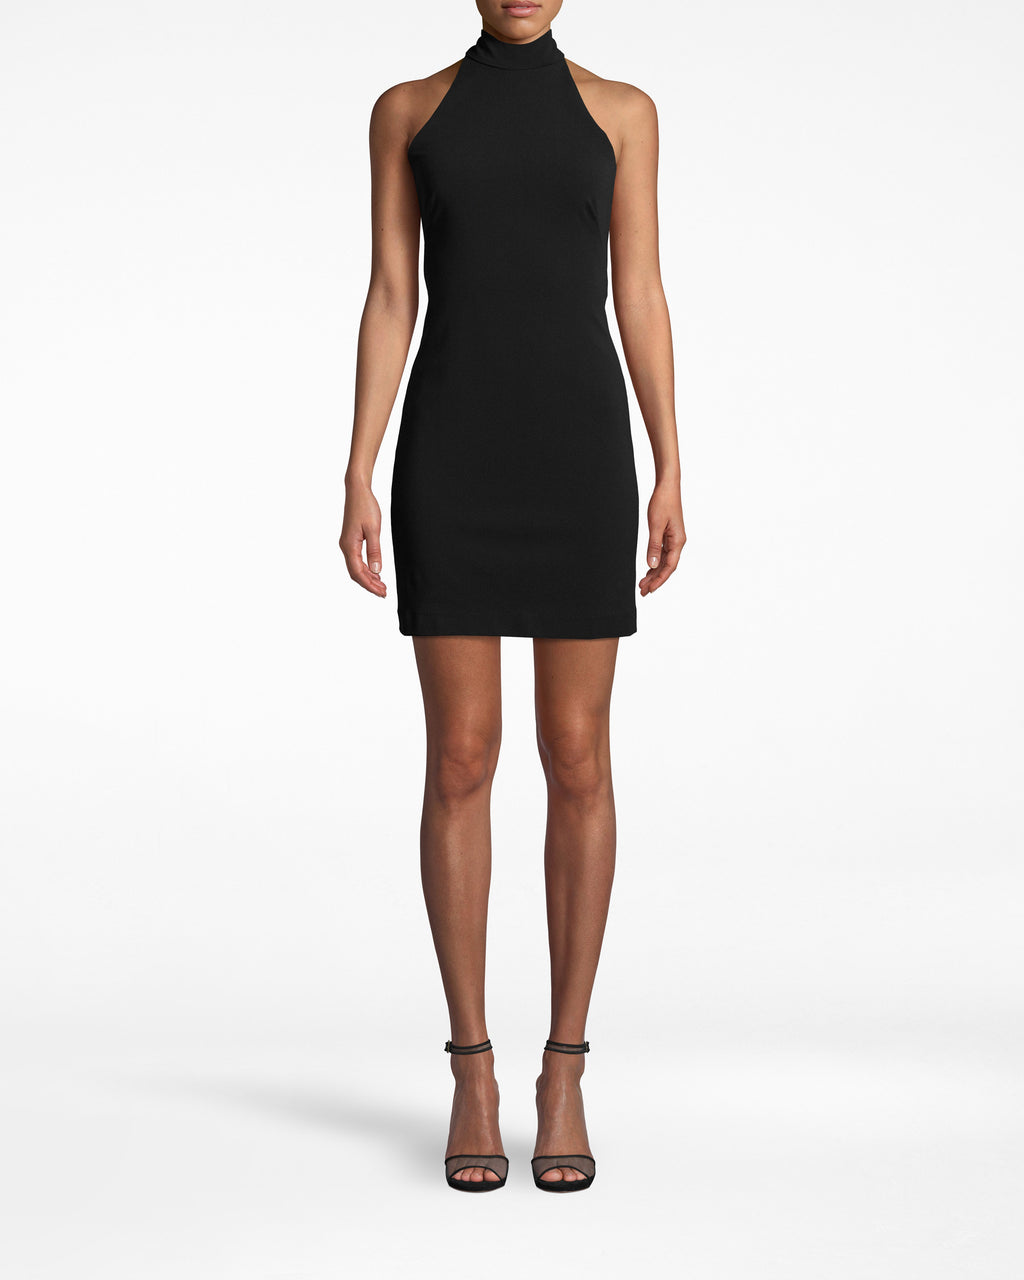 BP10268 - STRUCTURED HEAVY JERSEY MOCK NECK MINI DRESS - dresses - short - THIS DRESS IS PERFECT FOR A NIGHT OUT ON THE TOWN,FEATURING A HIGH NECK WITH A COMPLETELY OPEN BACK. MADE FROM HEAVY JERSEY MATERIAL AND FULLY lined, THIS IS YOUR NEW GO TO LBD.